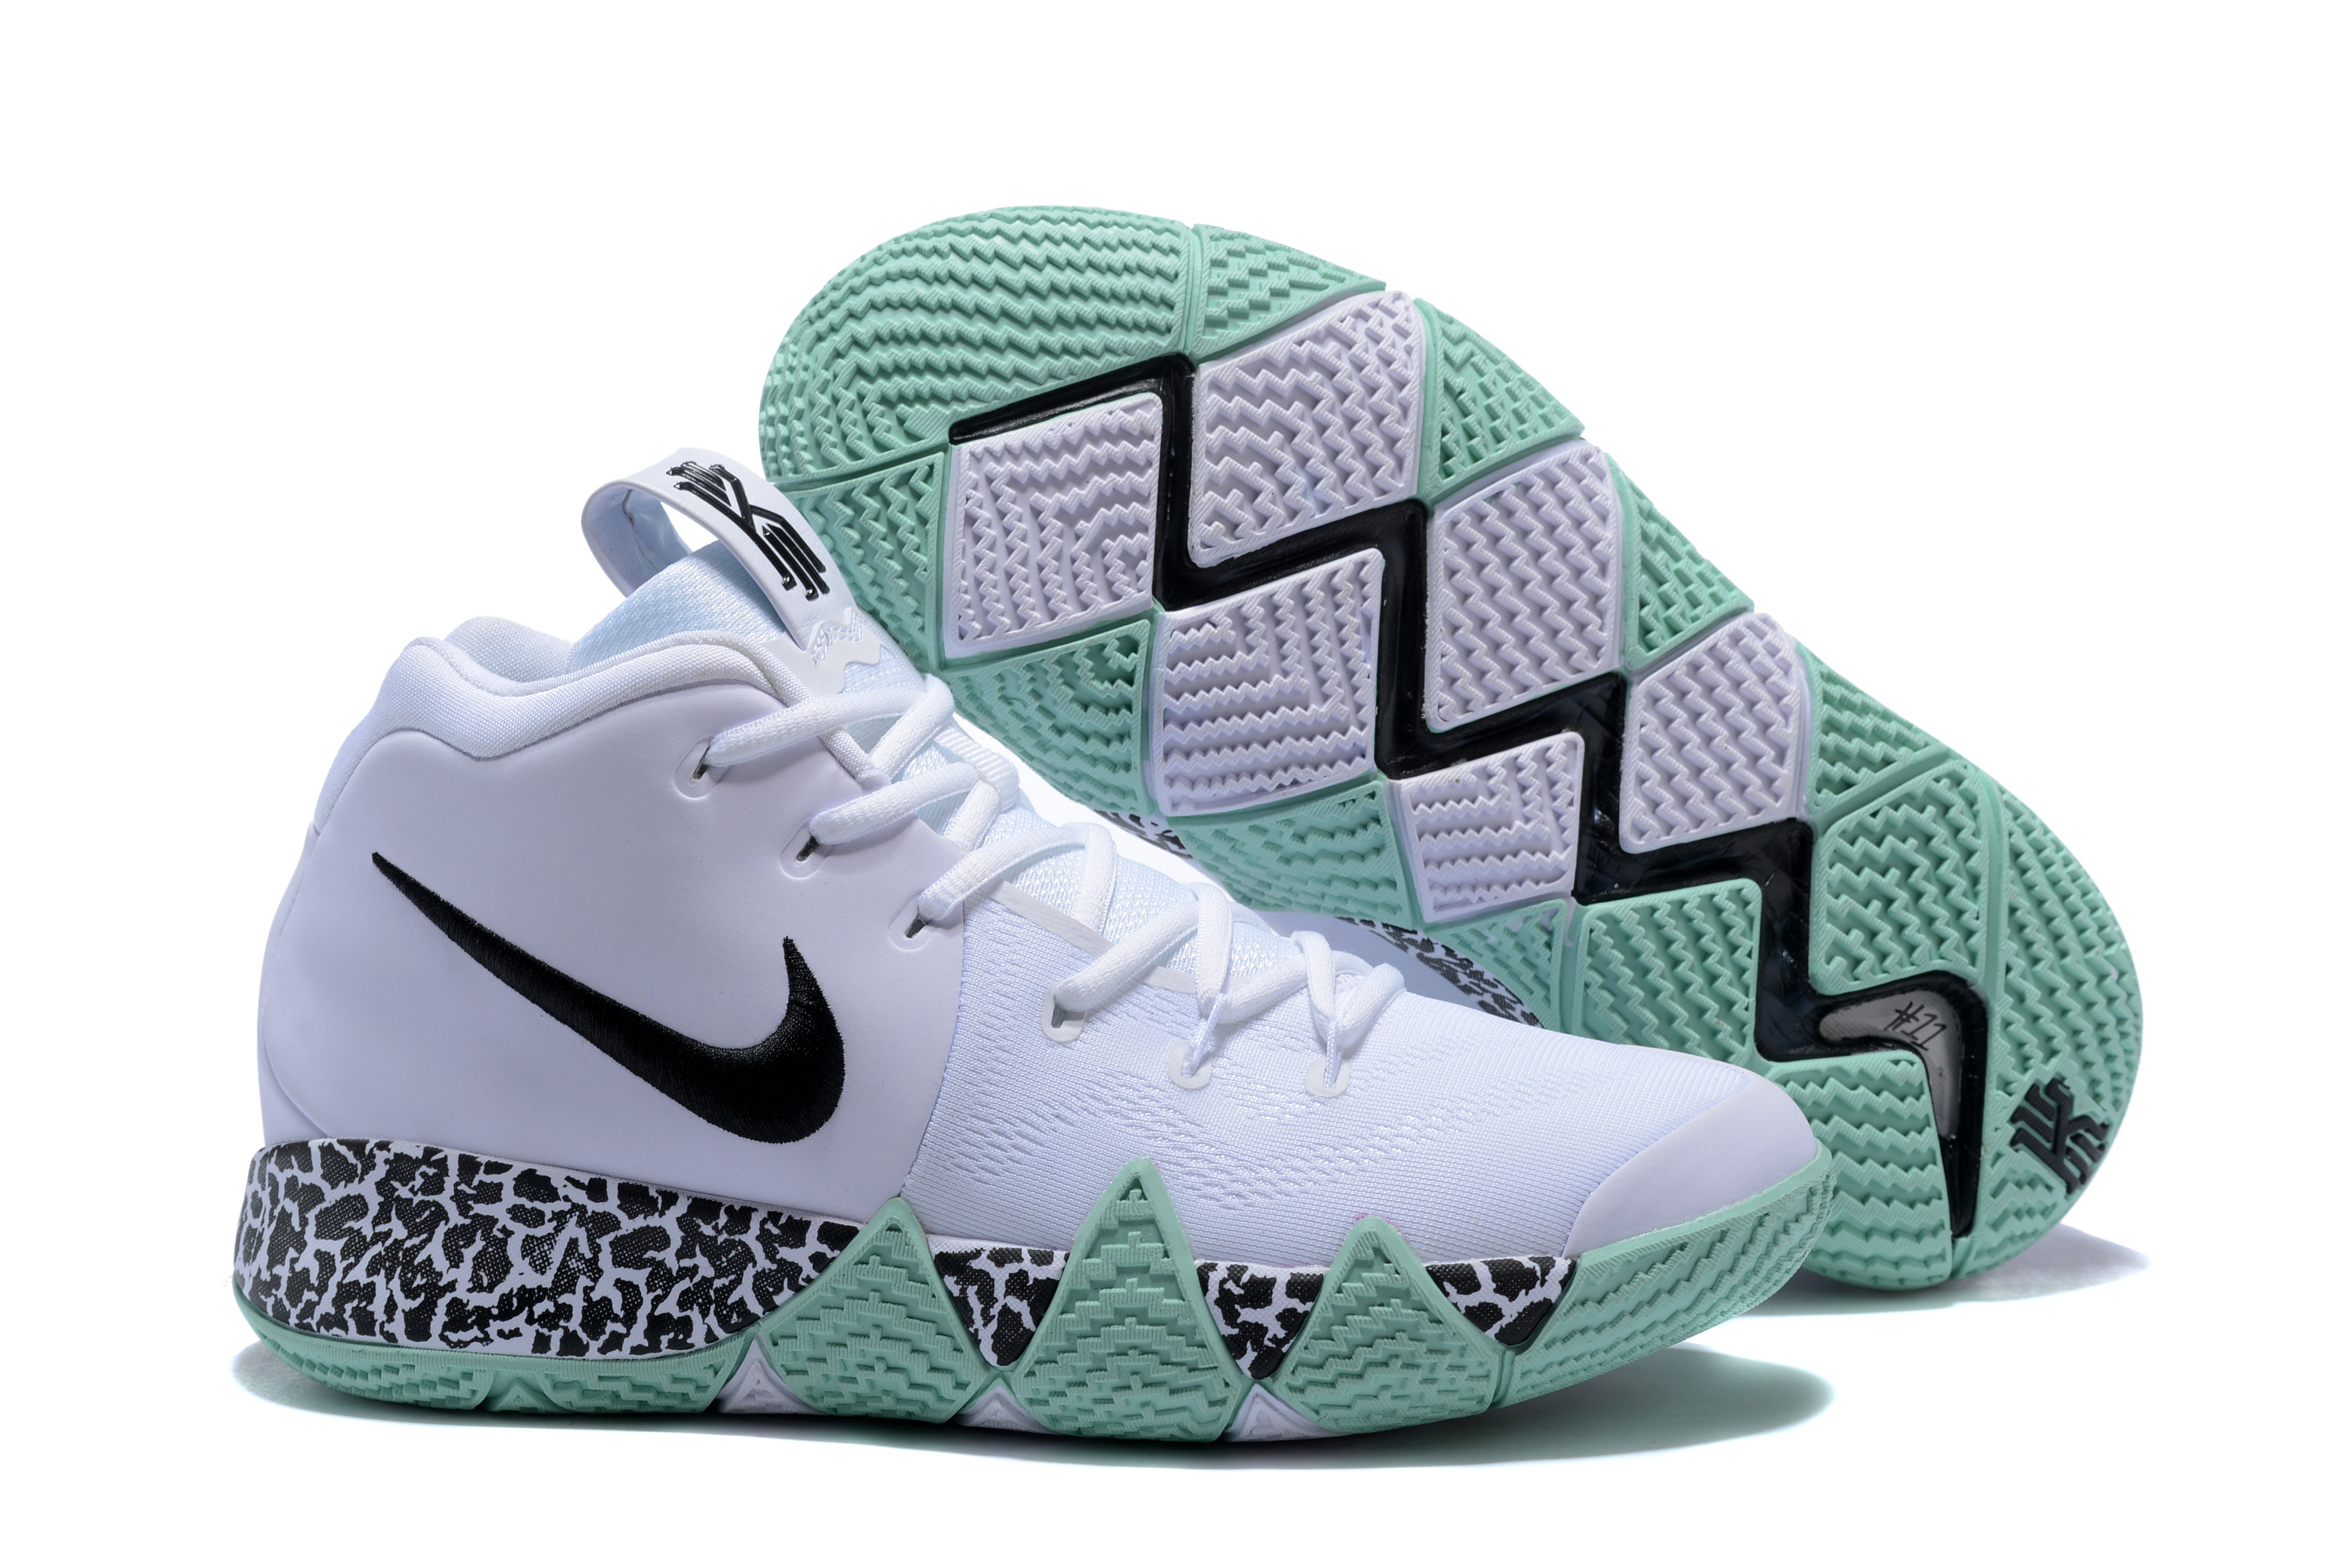 2017 Nike Kyrie 4 White Green Basketball Shoes